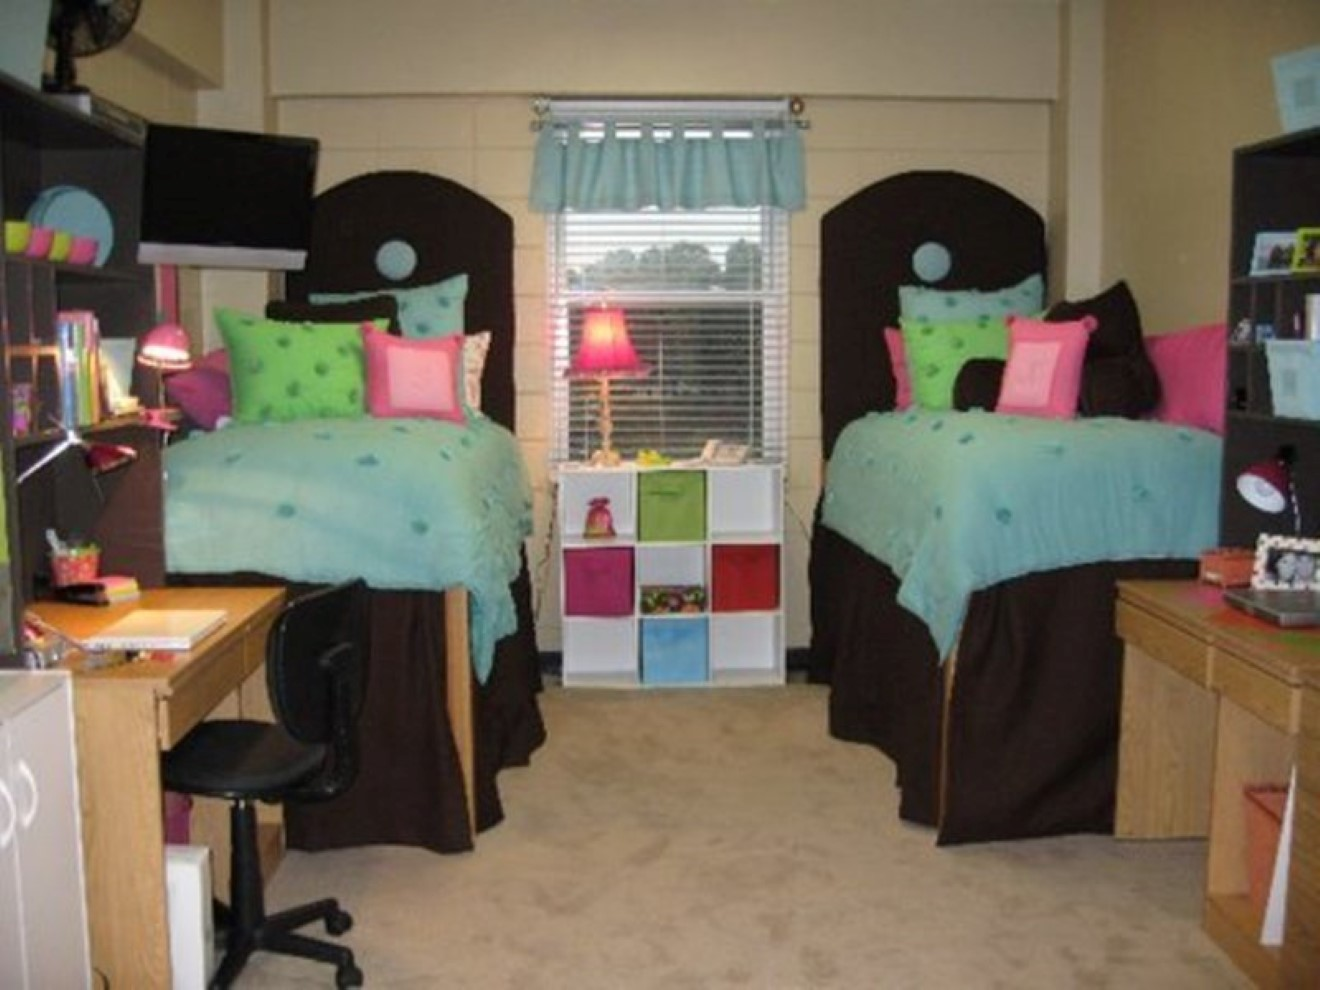 College dorm room ideas of distributing the nuance - Cool dorm room ideas ...